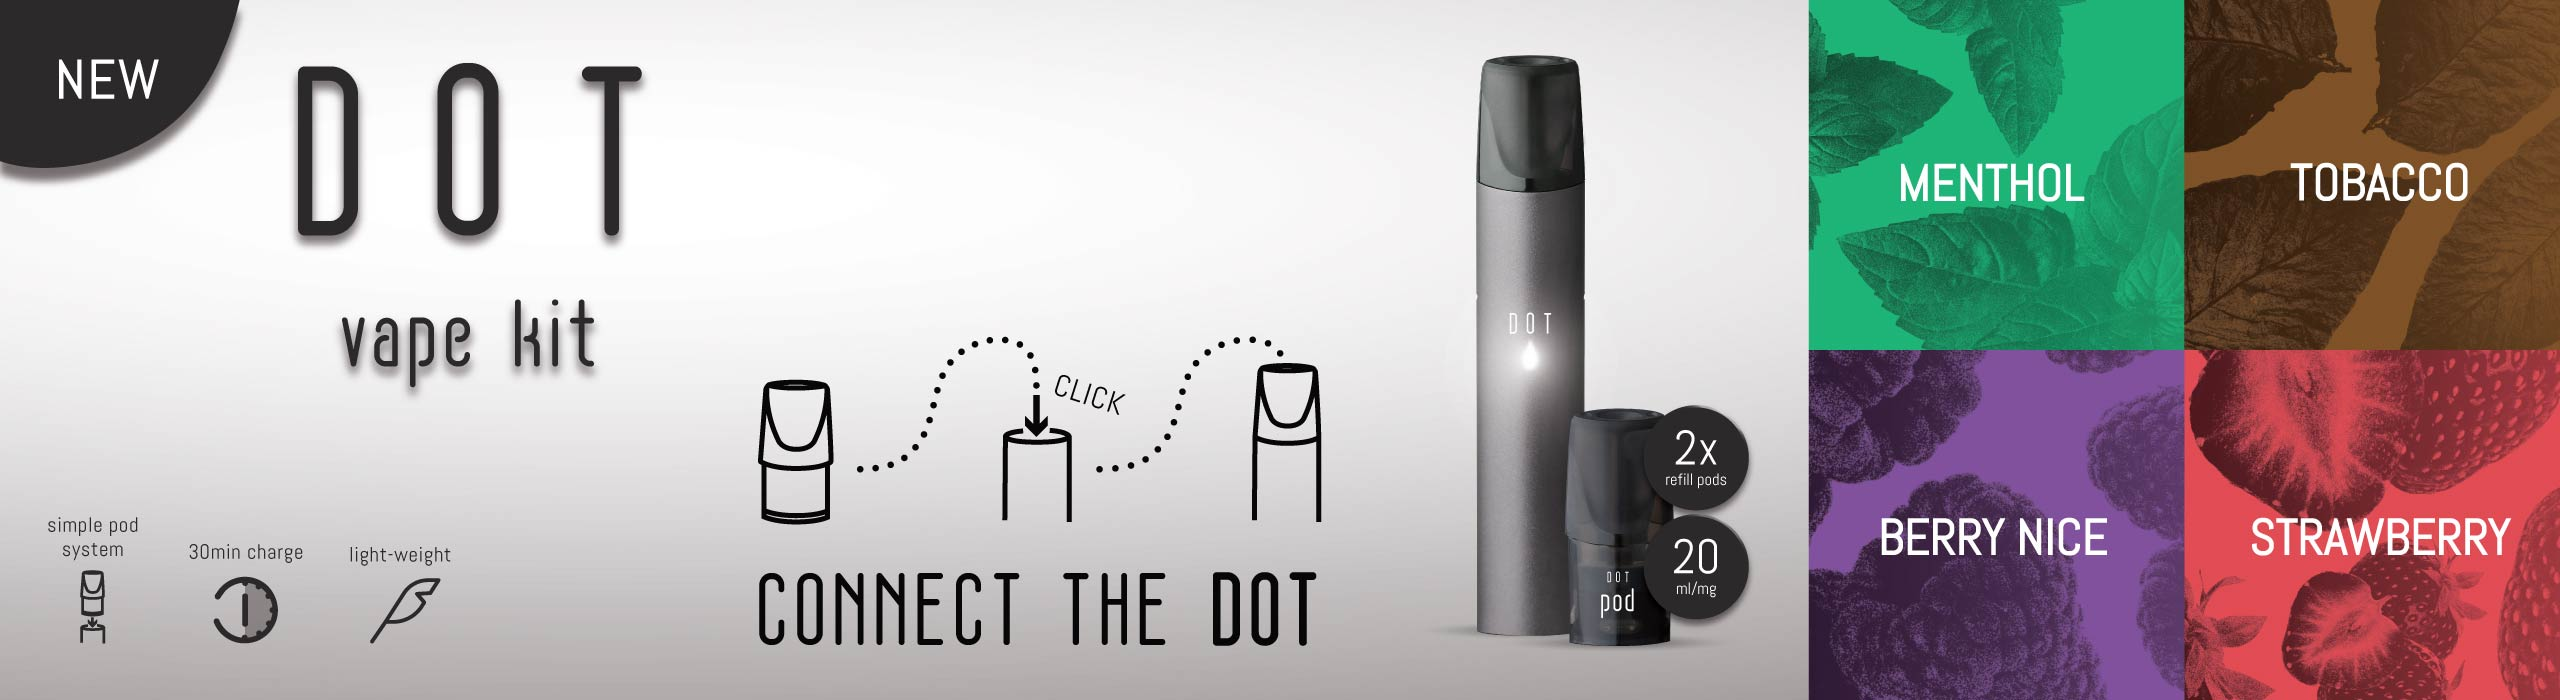 Introducing The New Dot Vape Kit